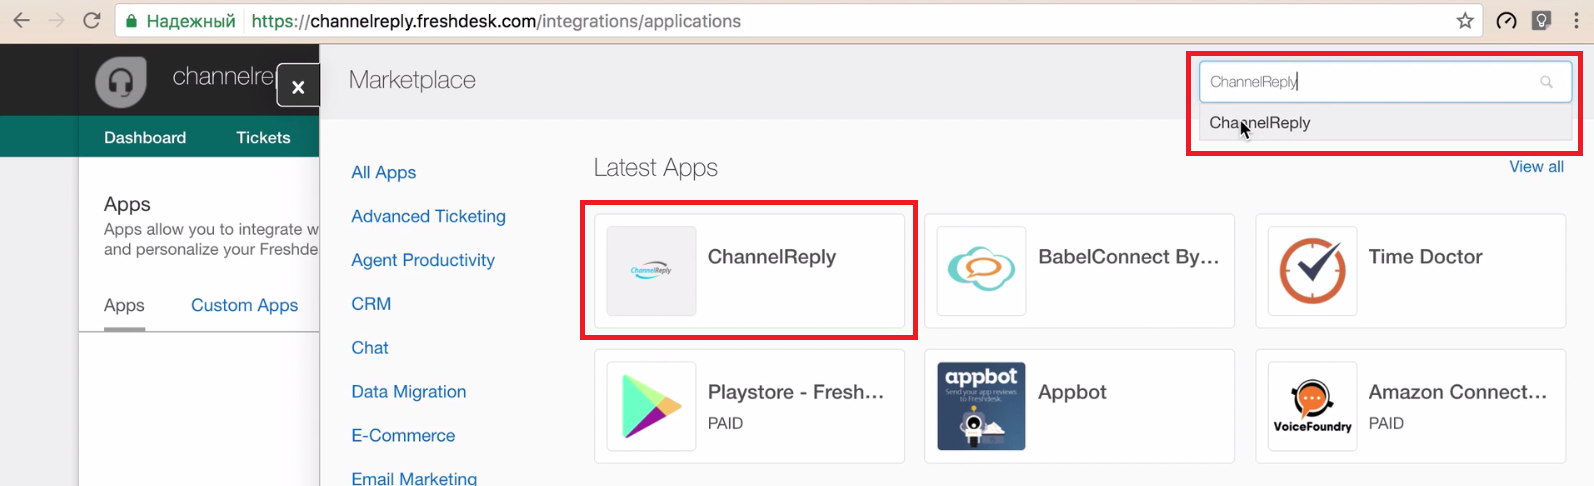 ChannelReply on the Freshdesk App Marketplace